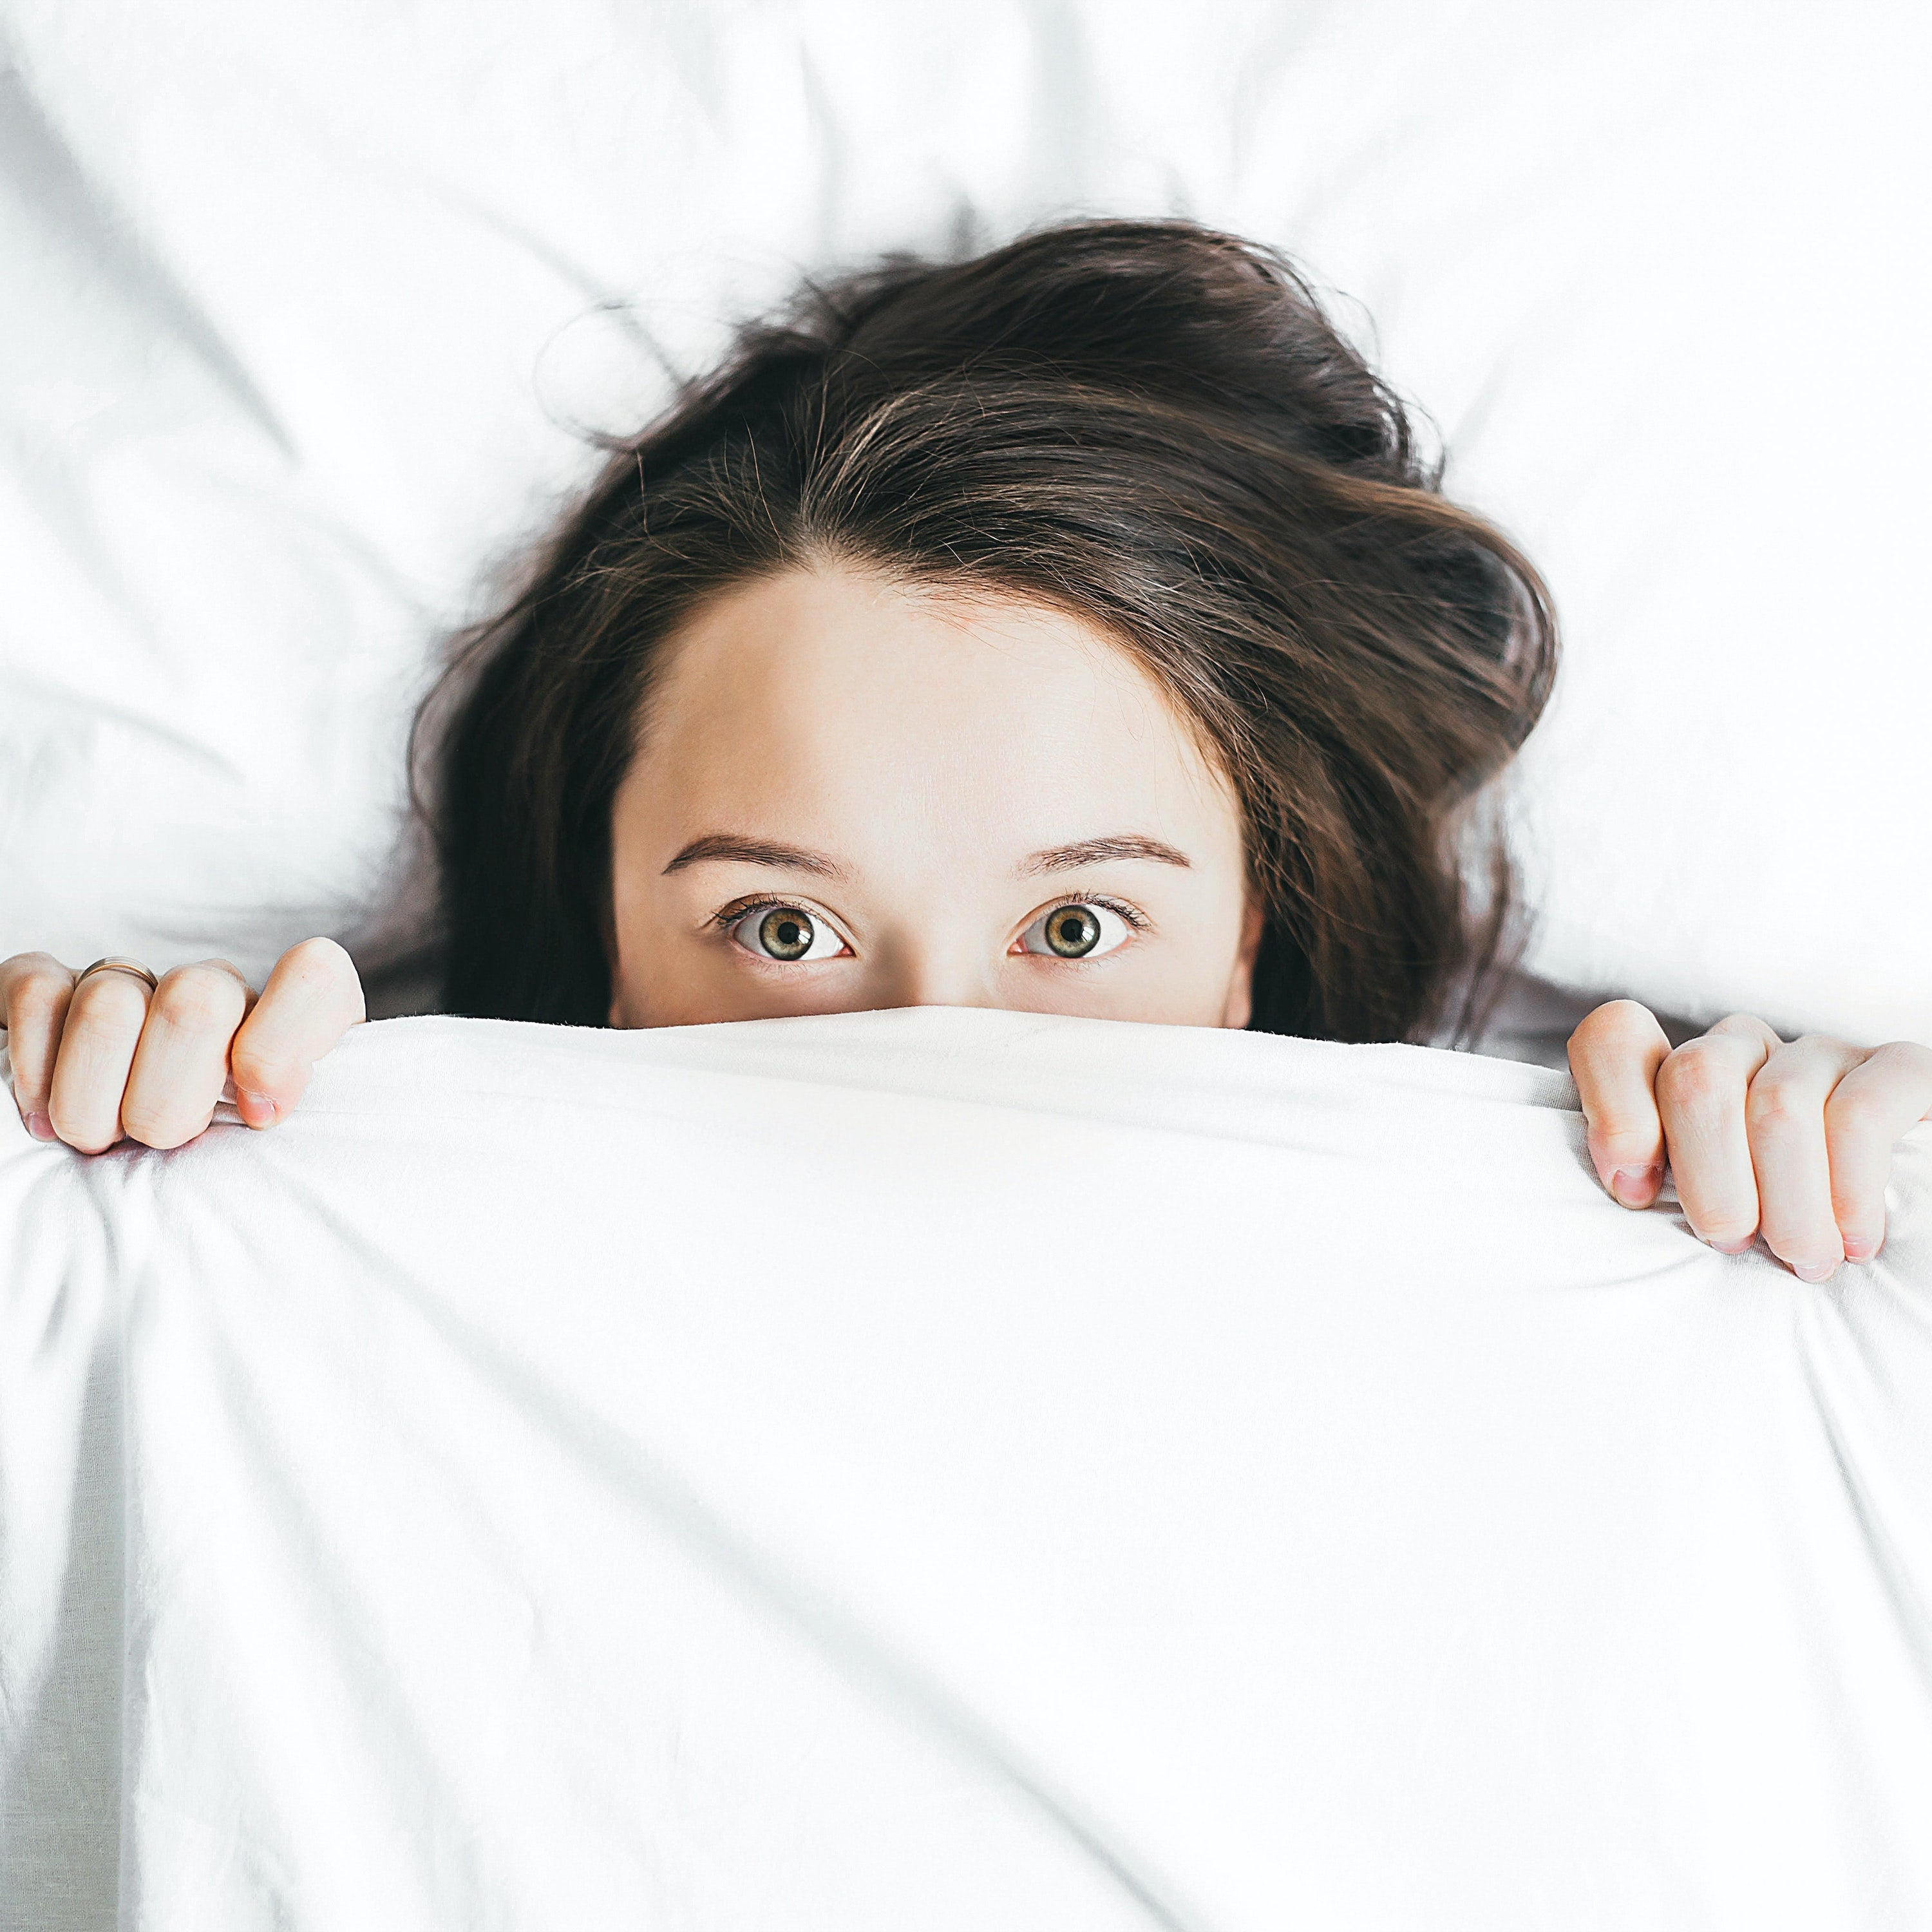 Sleep deprivation: what it is and how to avoid it